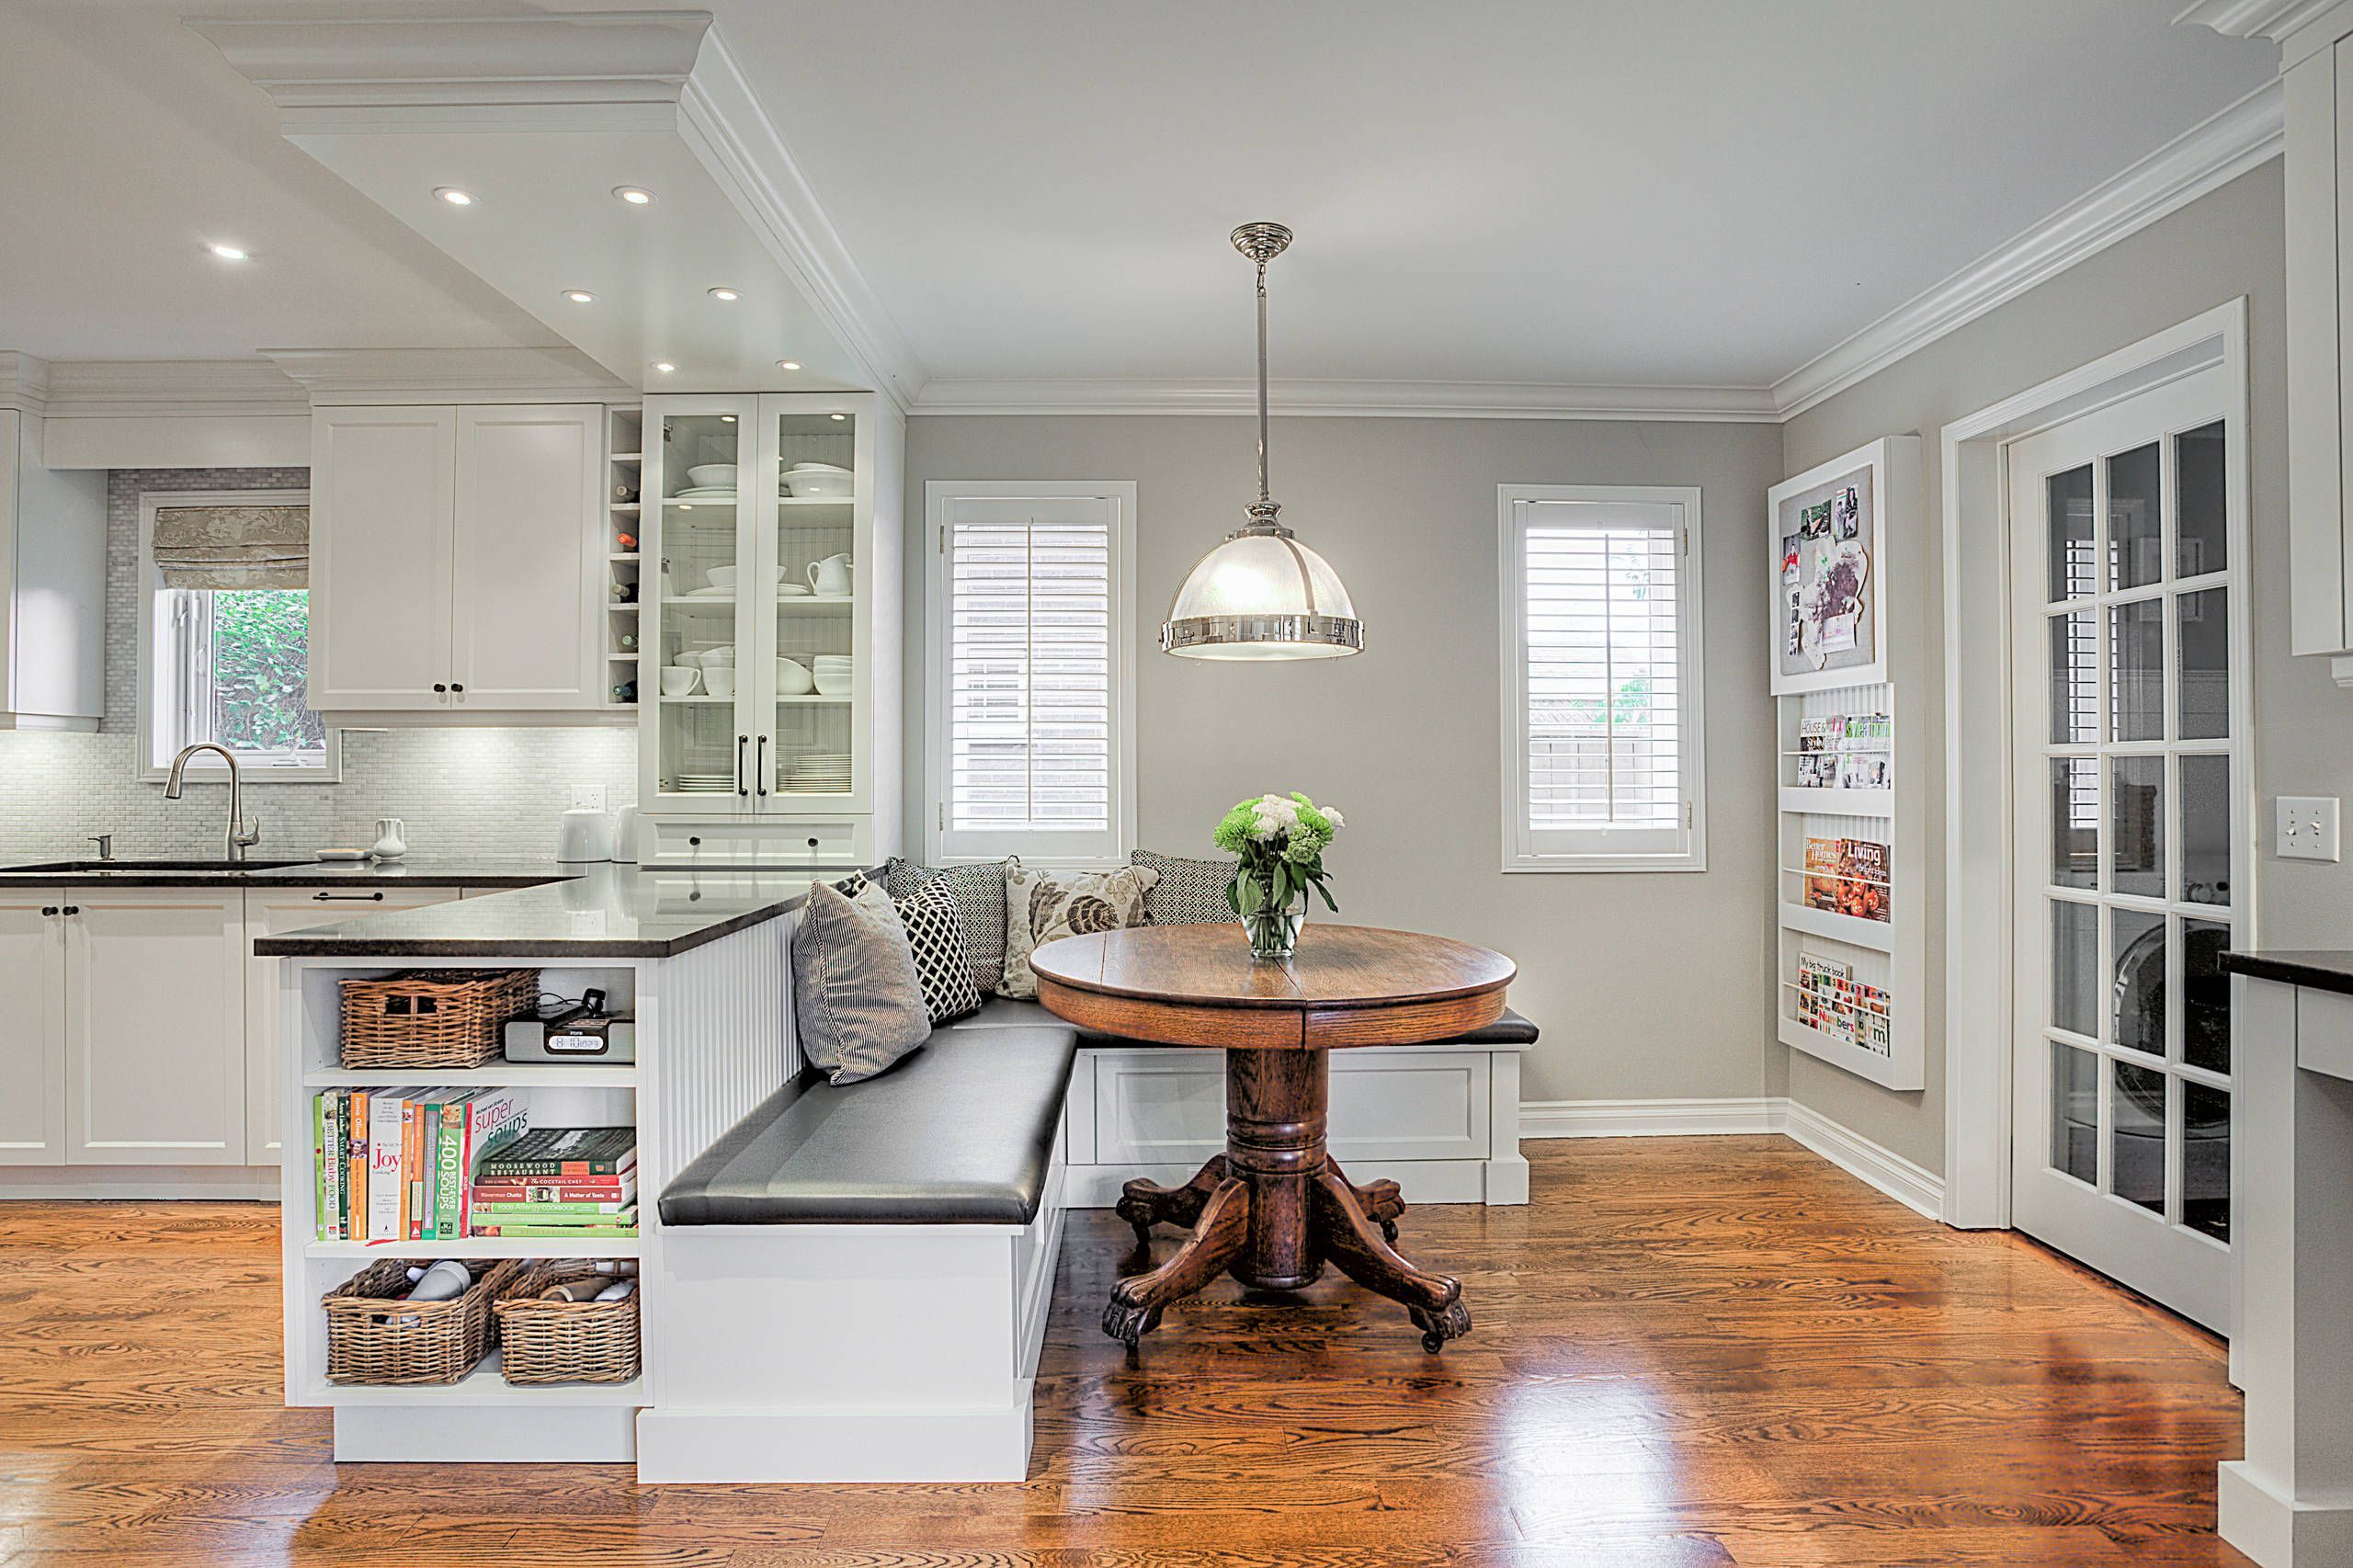 15 Reasons You Need A Breakfast Nook Kitchen Island With Bench Seating Kitchen Island With Seating Kitchen Design Kitchen island breakfast table